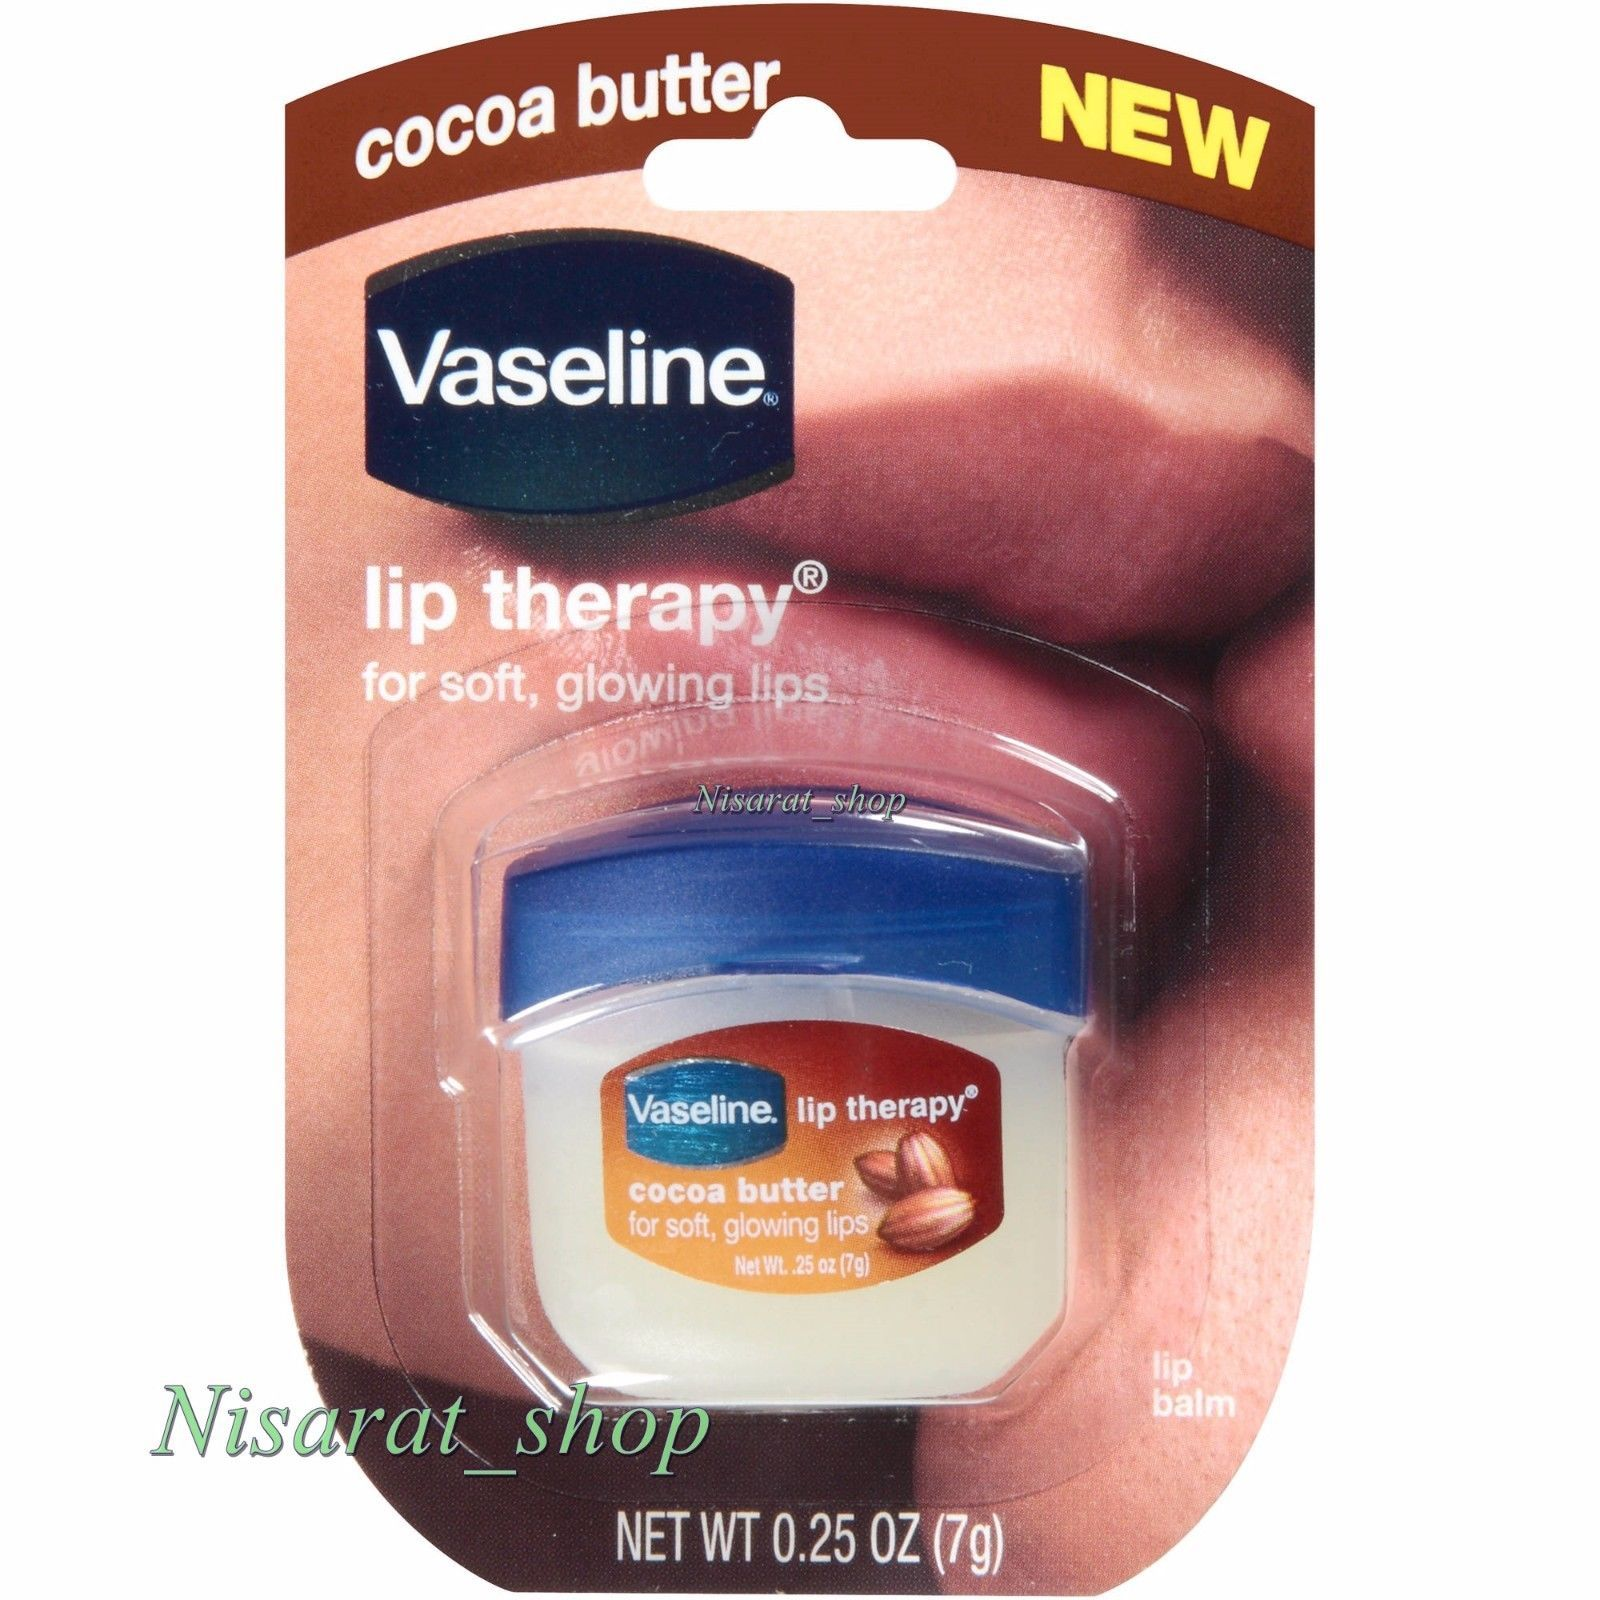 Cocoa Butter Lip Balm Skincare Pinterest And Lips Vaseline Therapy Tiny Tube Rosy Coco Awesome Products Selected By Anna Churchill